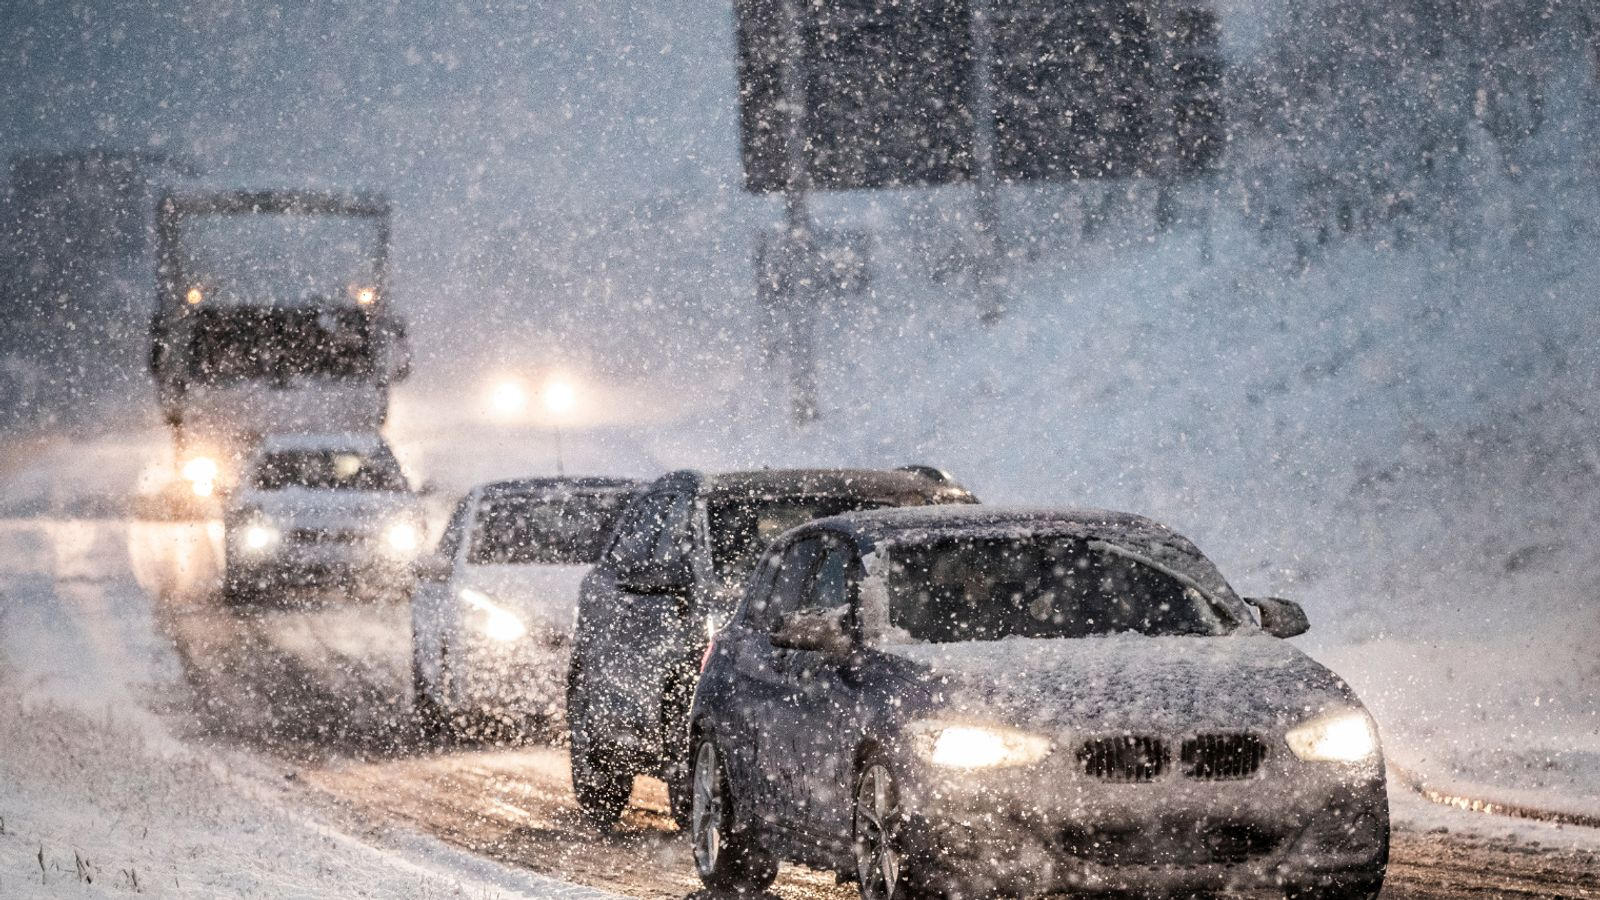 UK weather: Snow and ice warnings for large parts of UK after flood chaos